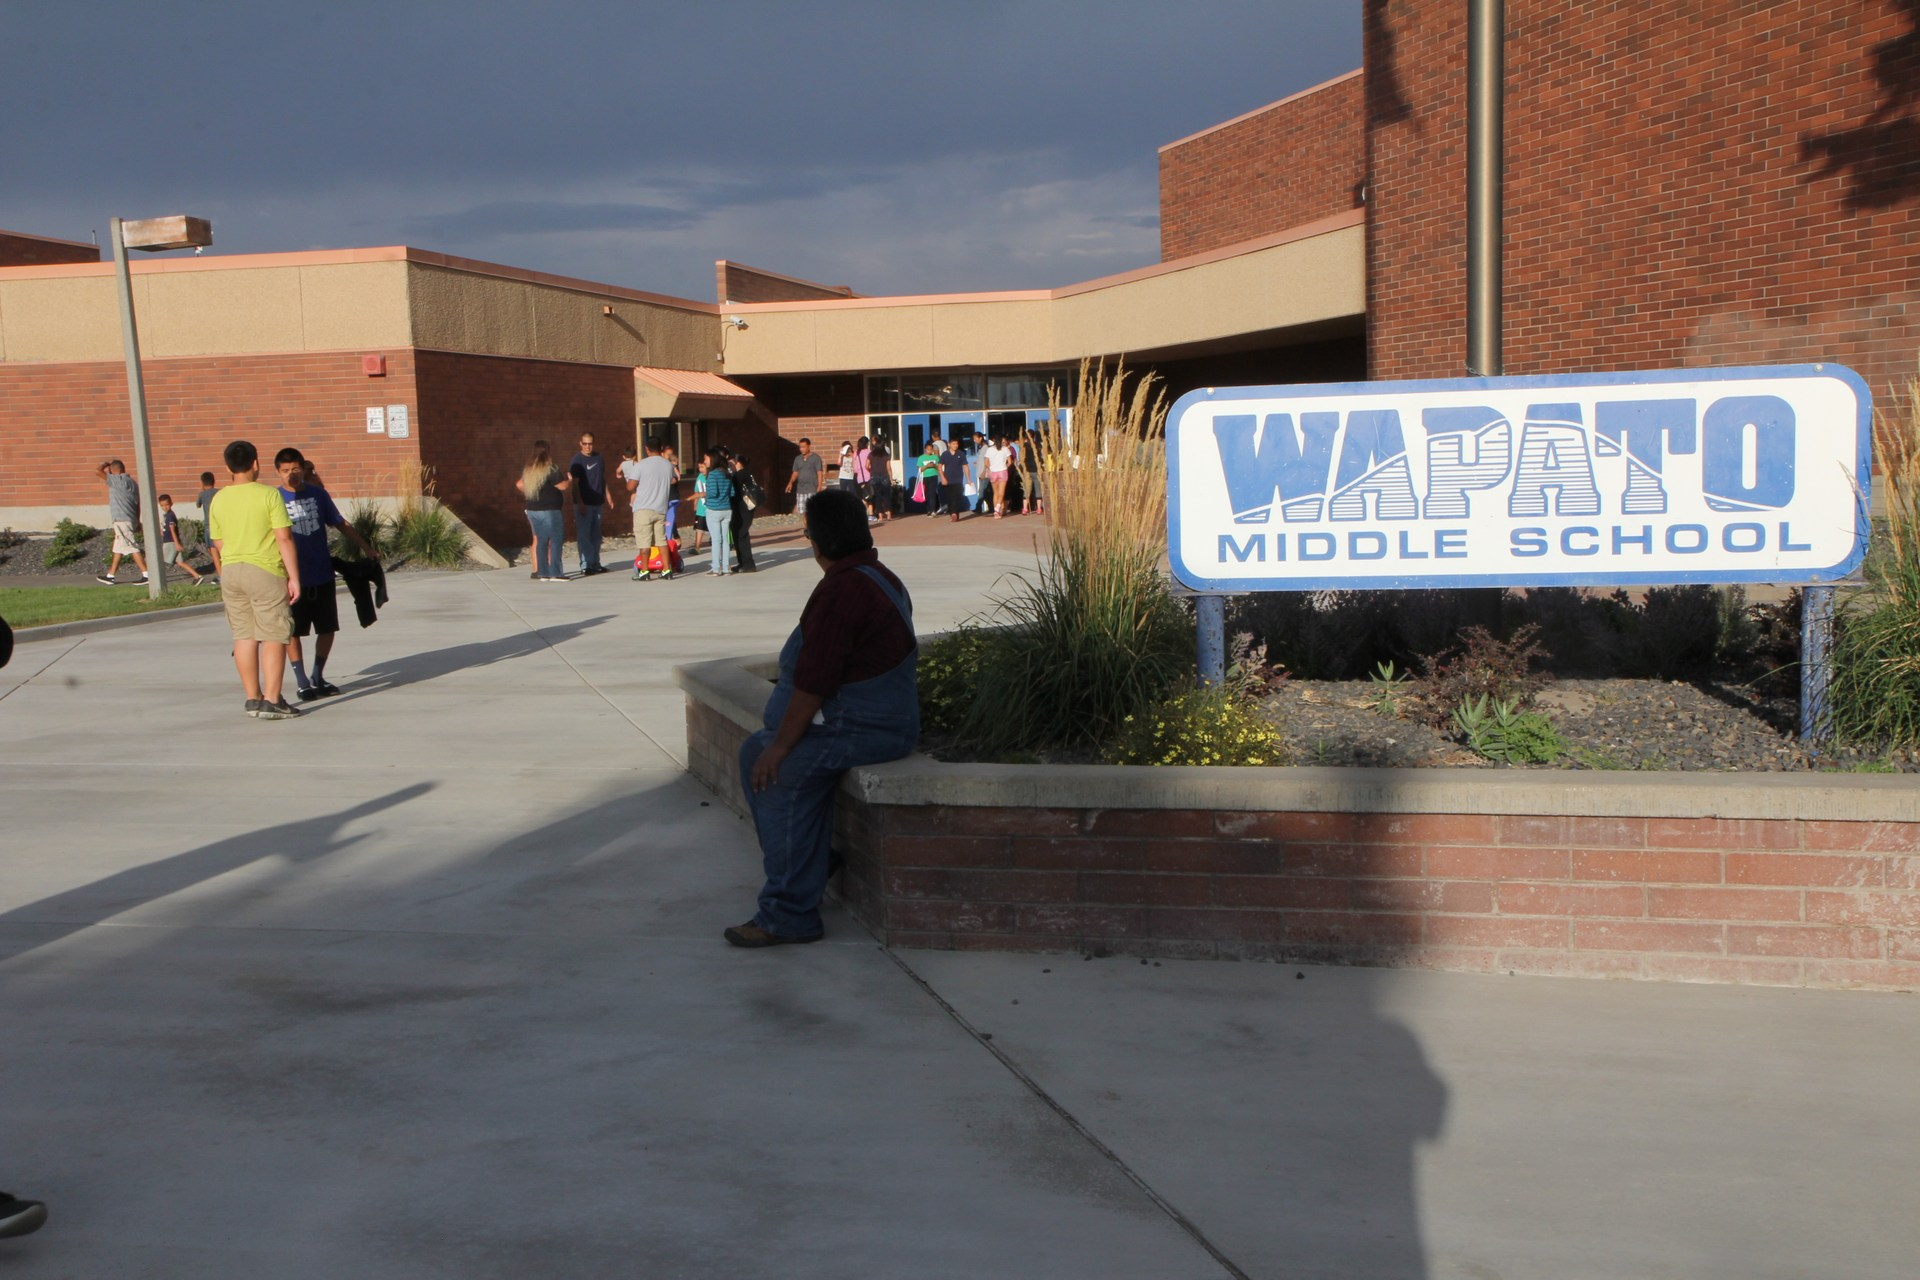 Exterior of Wapato Middle School